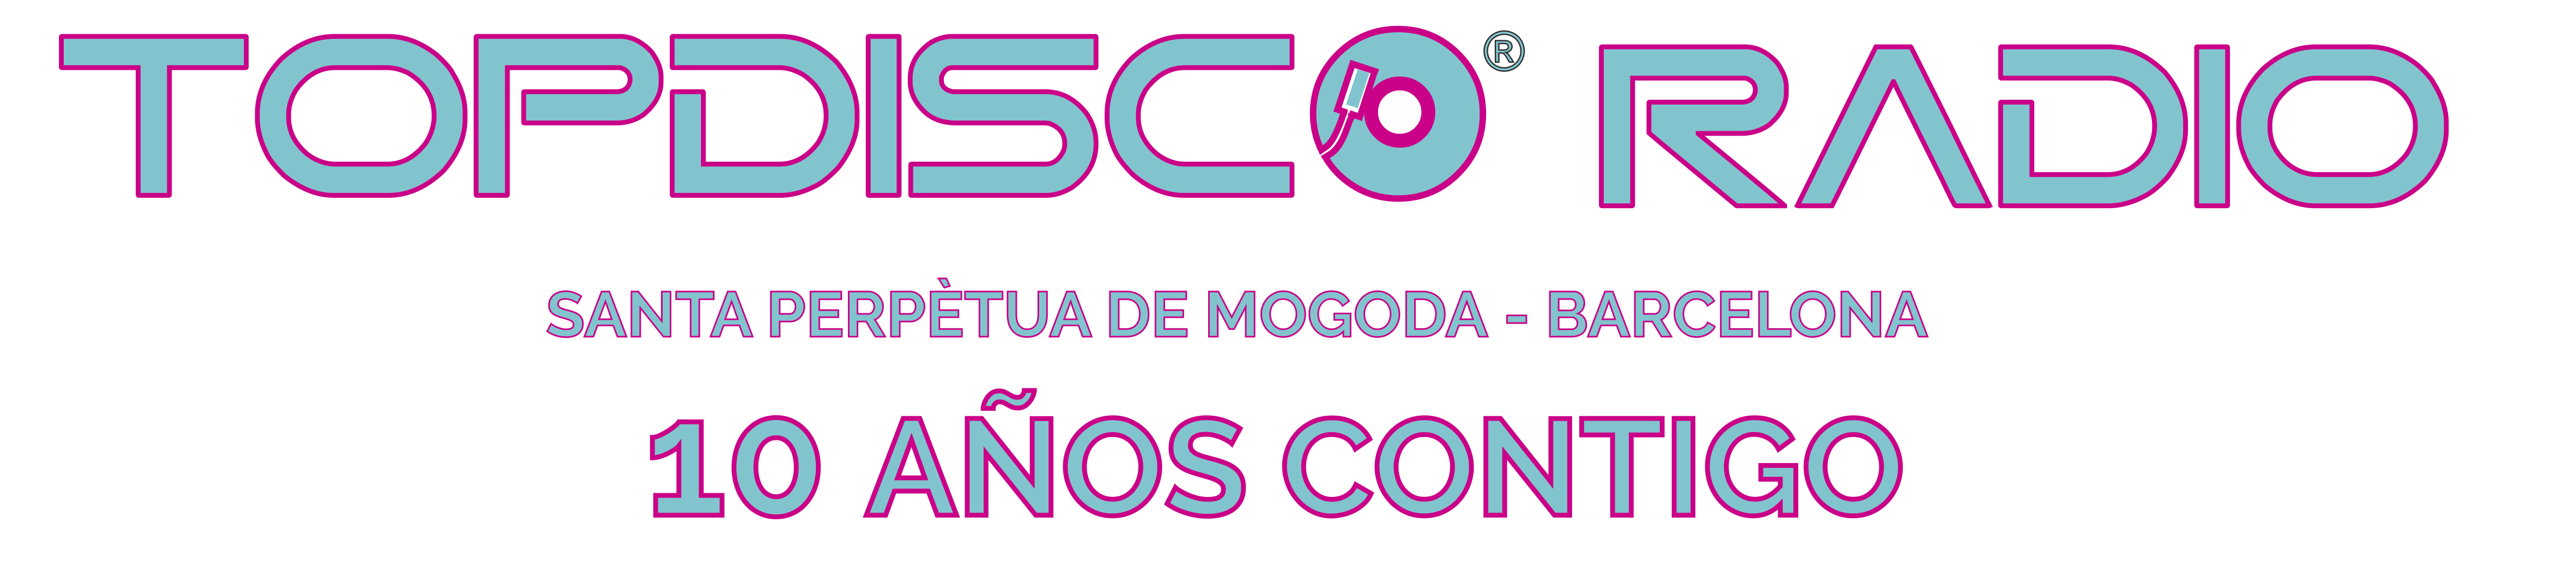 LOGO WEB TOPDISCO RADIO 10 AÑOS CONTIGO